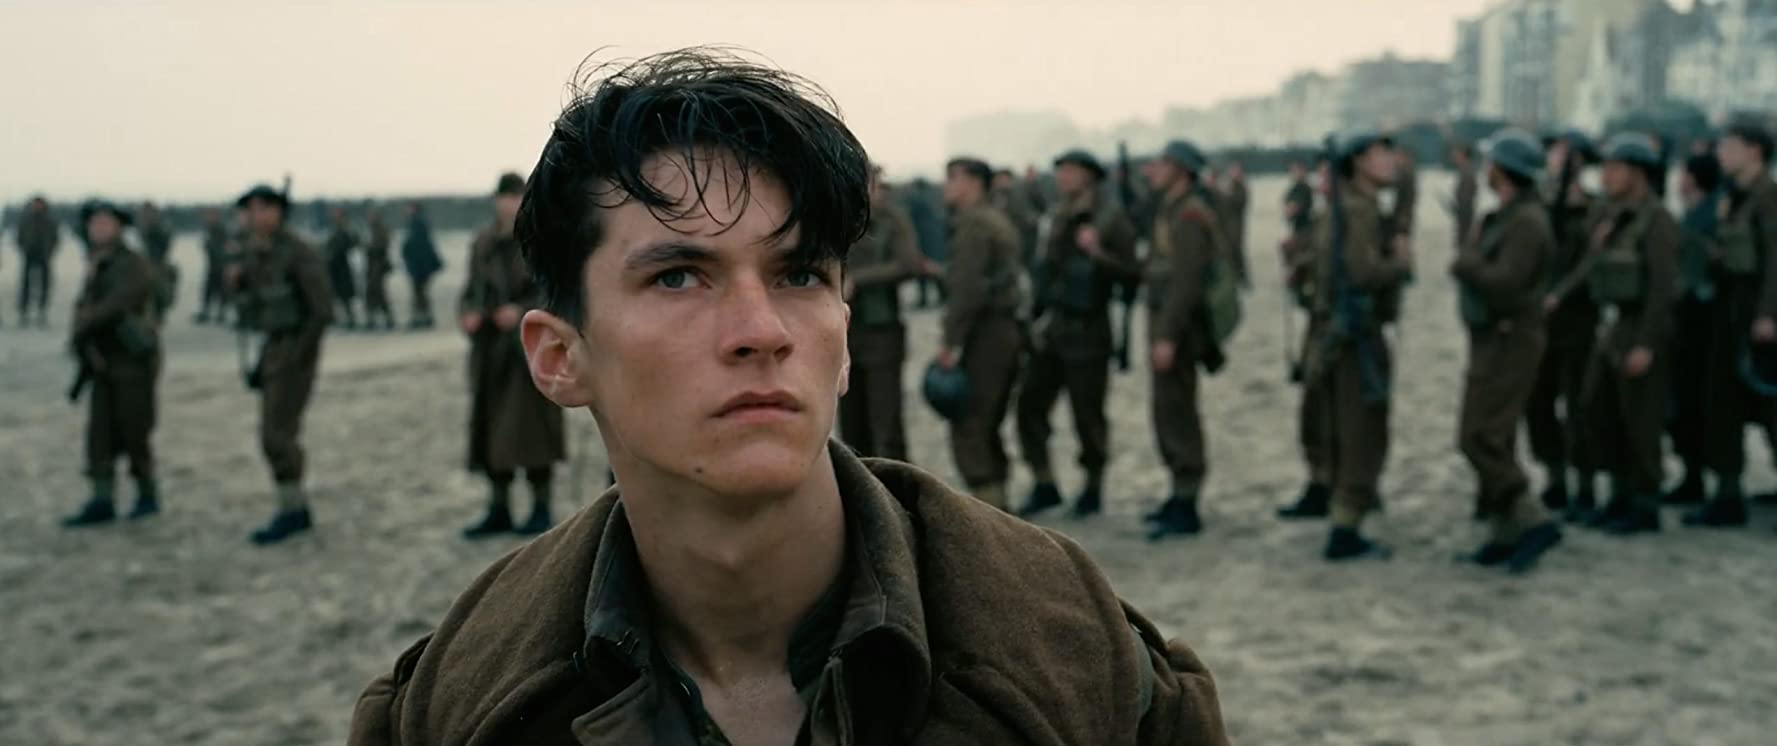 The Minimalism of 'Dunkirk'